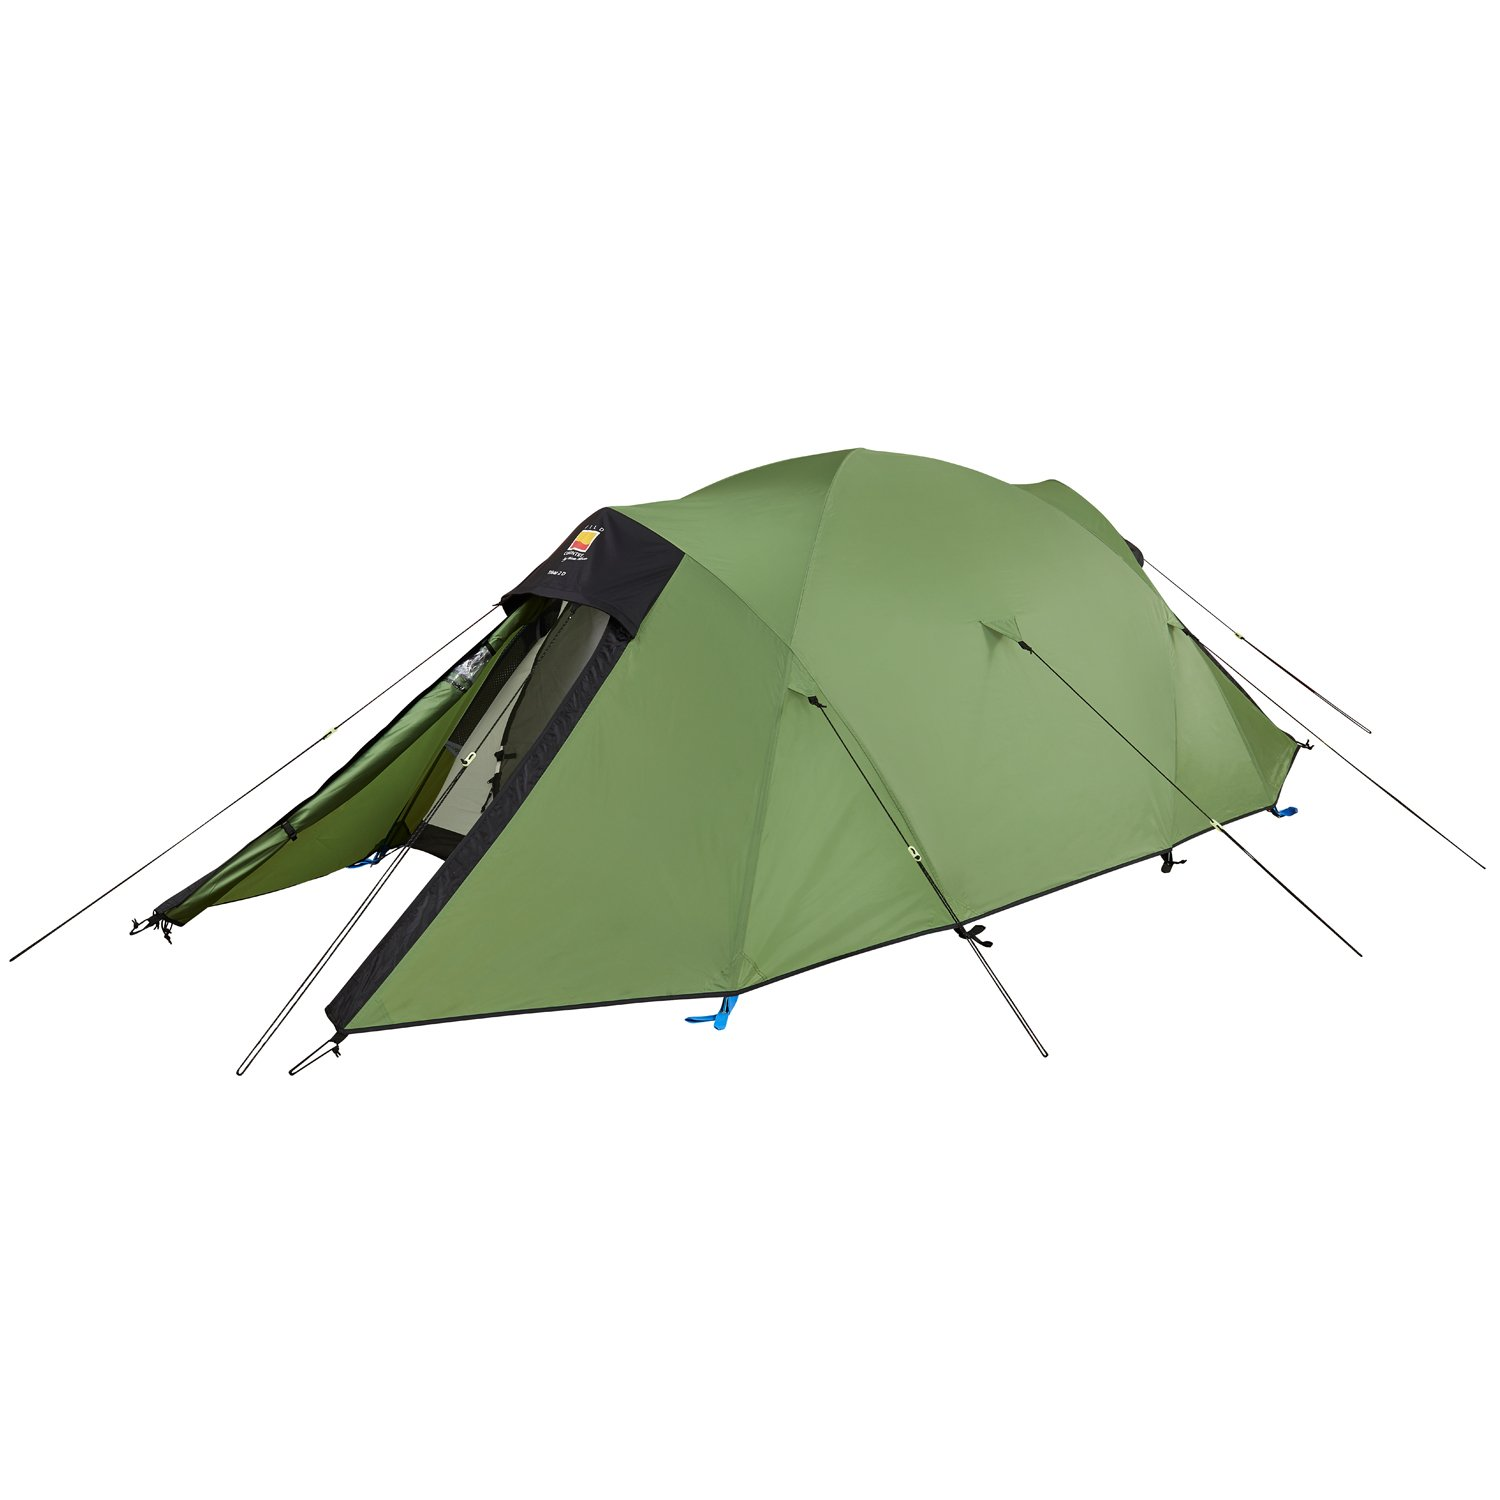 Trisar 2 D Tent  sc 1 st  Terra Nova Equipment & All Tents - Terra Nova Equipment